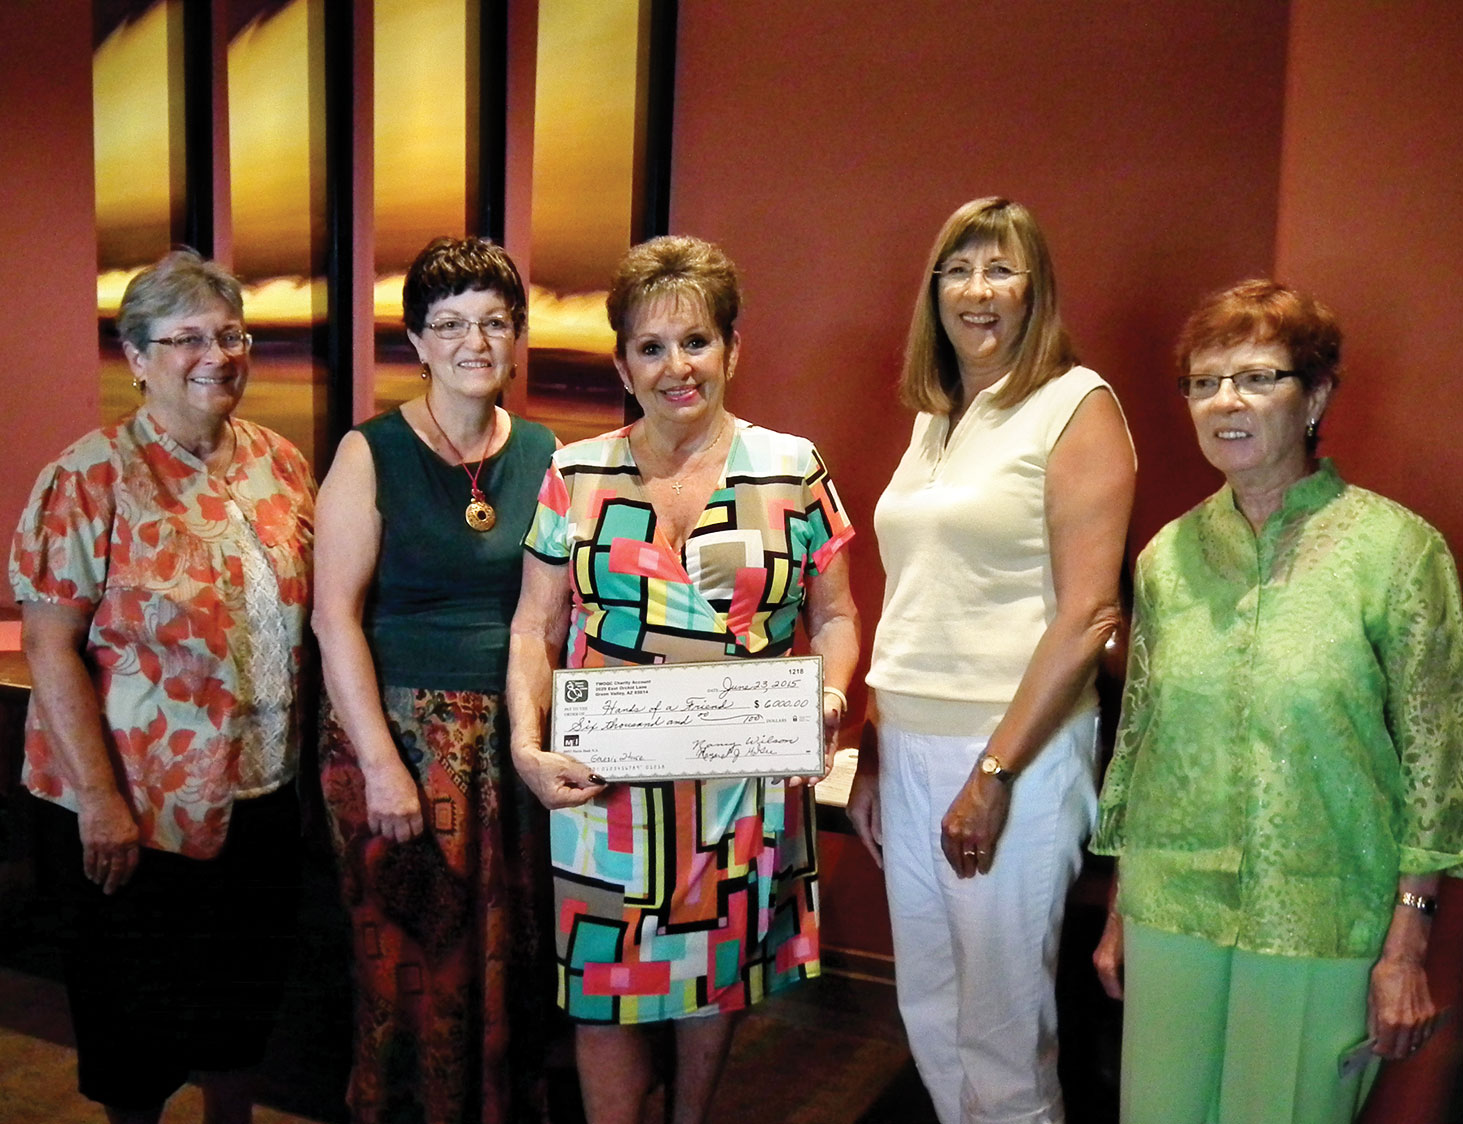 Cookbook Committee presents check to Genesis House Shelter. Left to right: Cindy Day, Committee Chair Claudia Ullevig, Genesis House Founder/CEO Patty O'Berry, Janice Swain and TWOQC President Peggy McGee. Photo by Lynda Rivard.